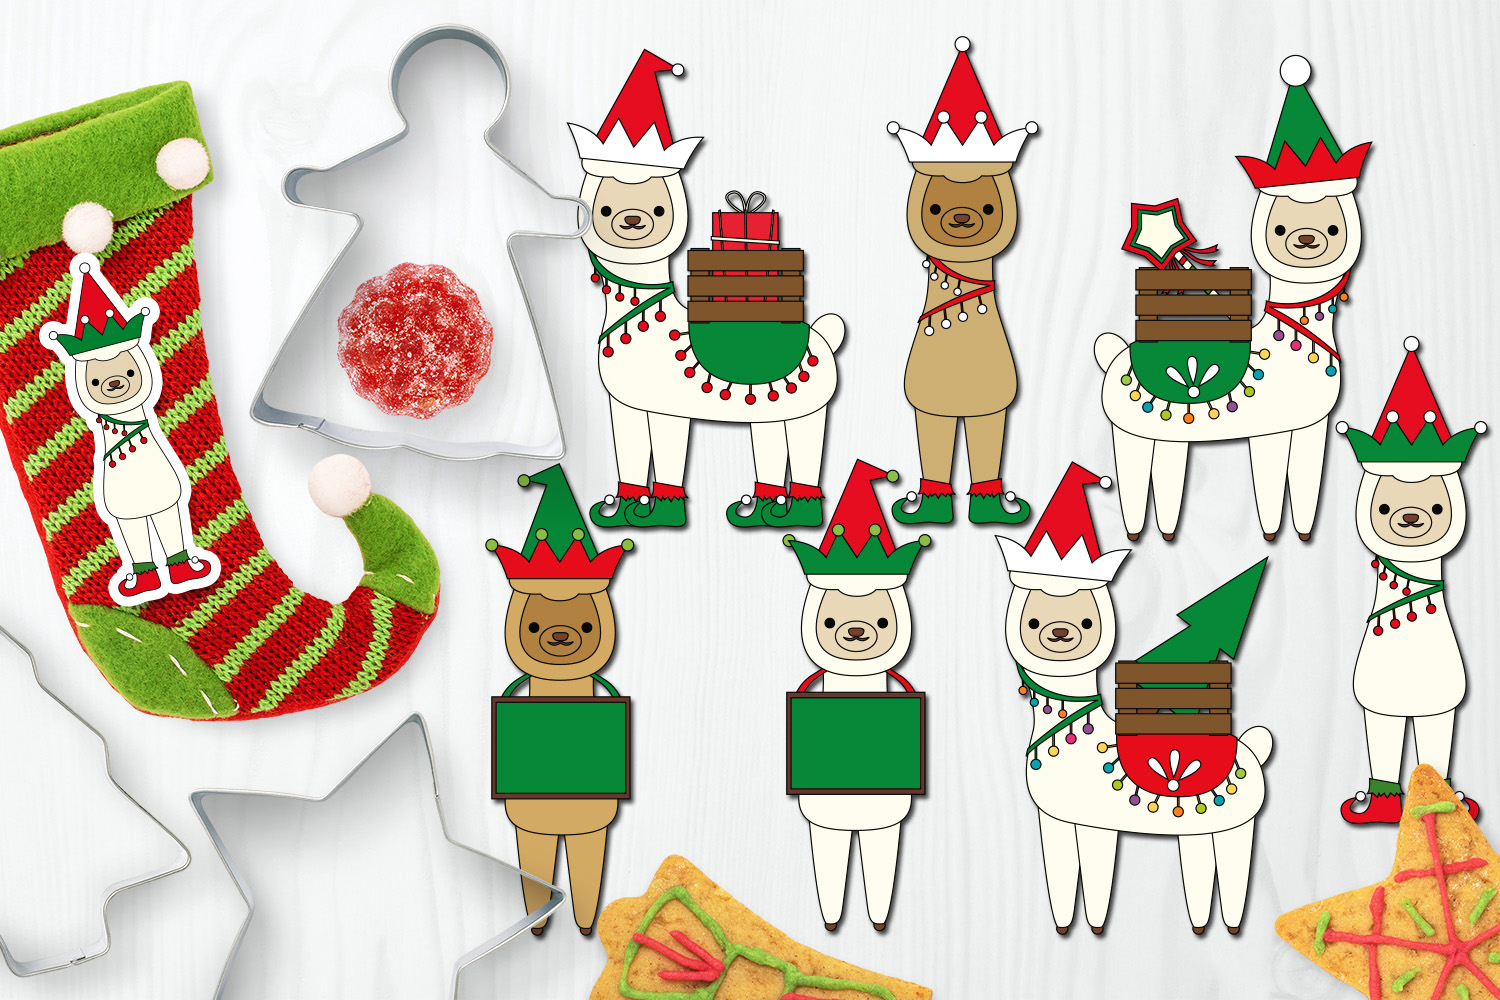 Download Free Christmas Elf Llamas Graphic By Darrakadisha Creative Fabrica for Cricut Explore, Silhouette and other cutting machines.